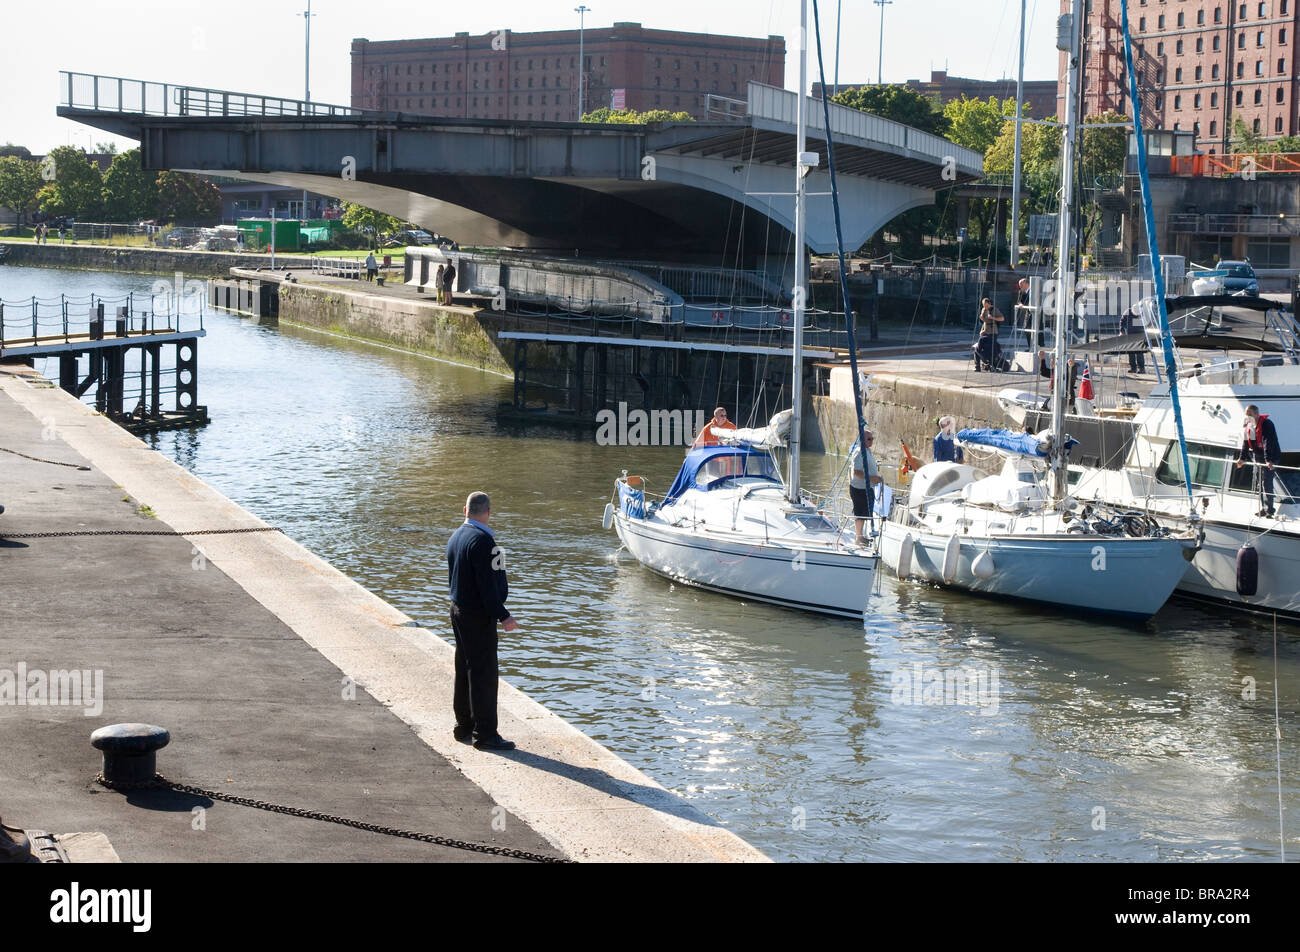 Lock keeper watches boats enter the Brunel lock - Stock Image